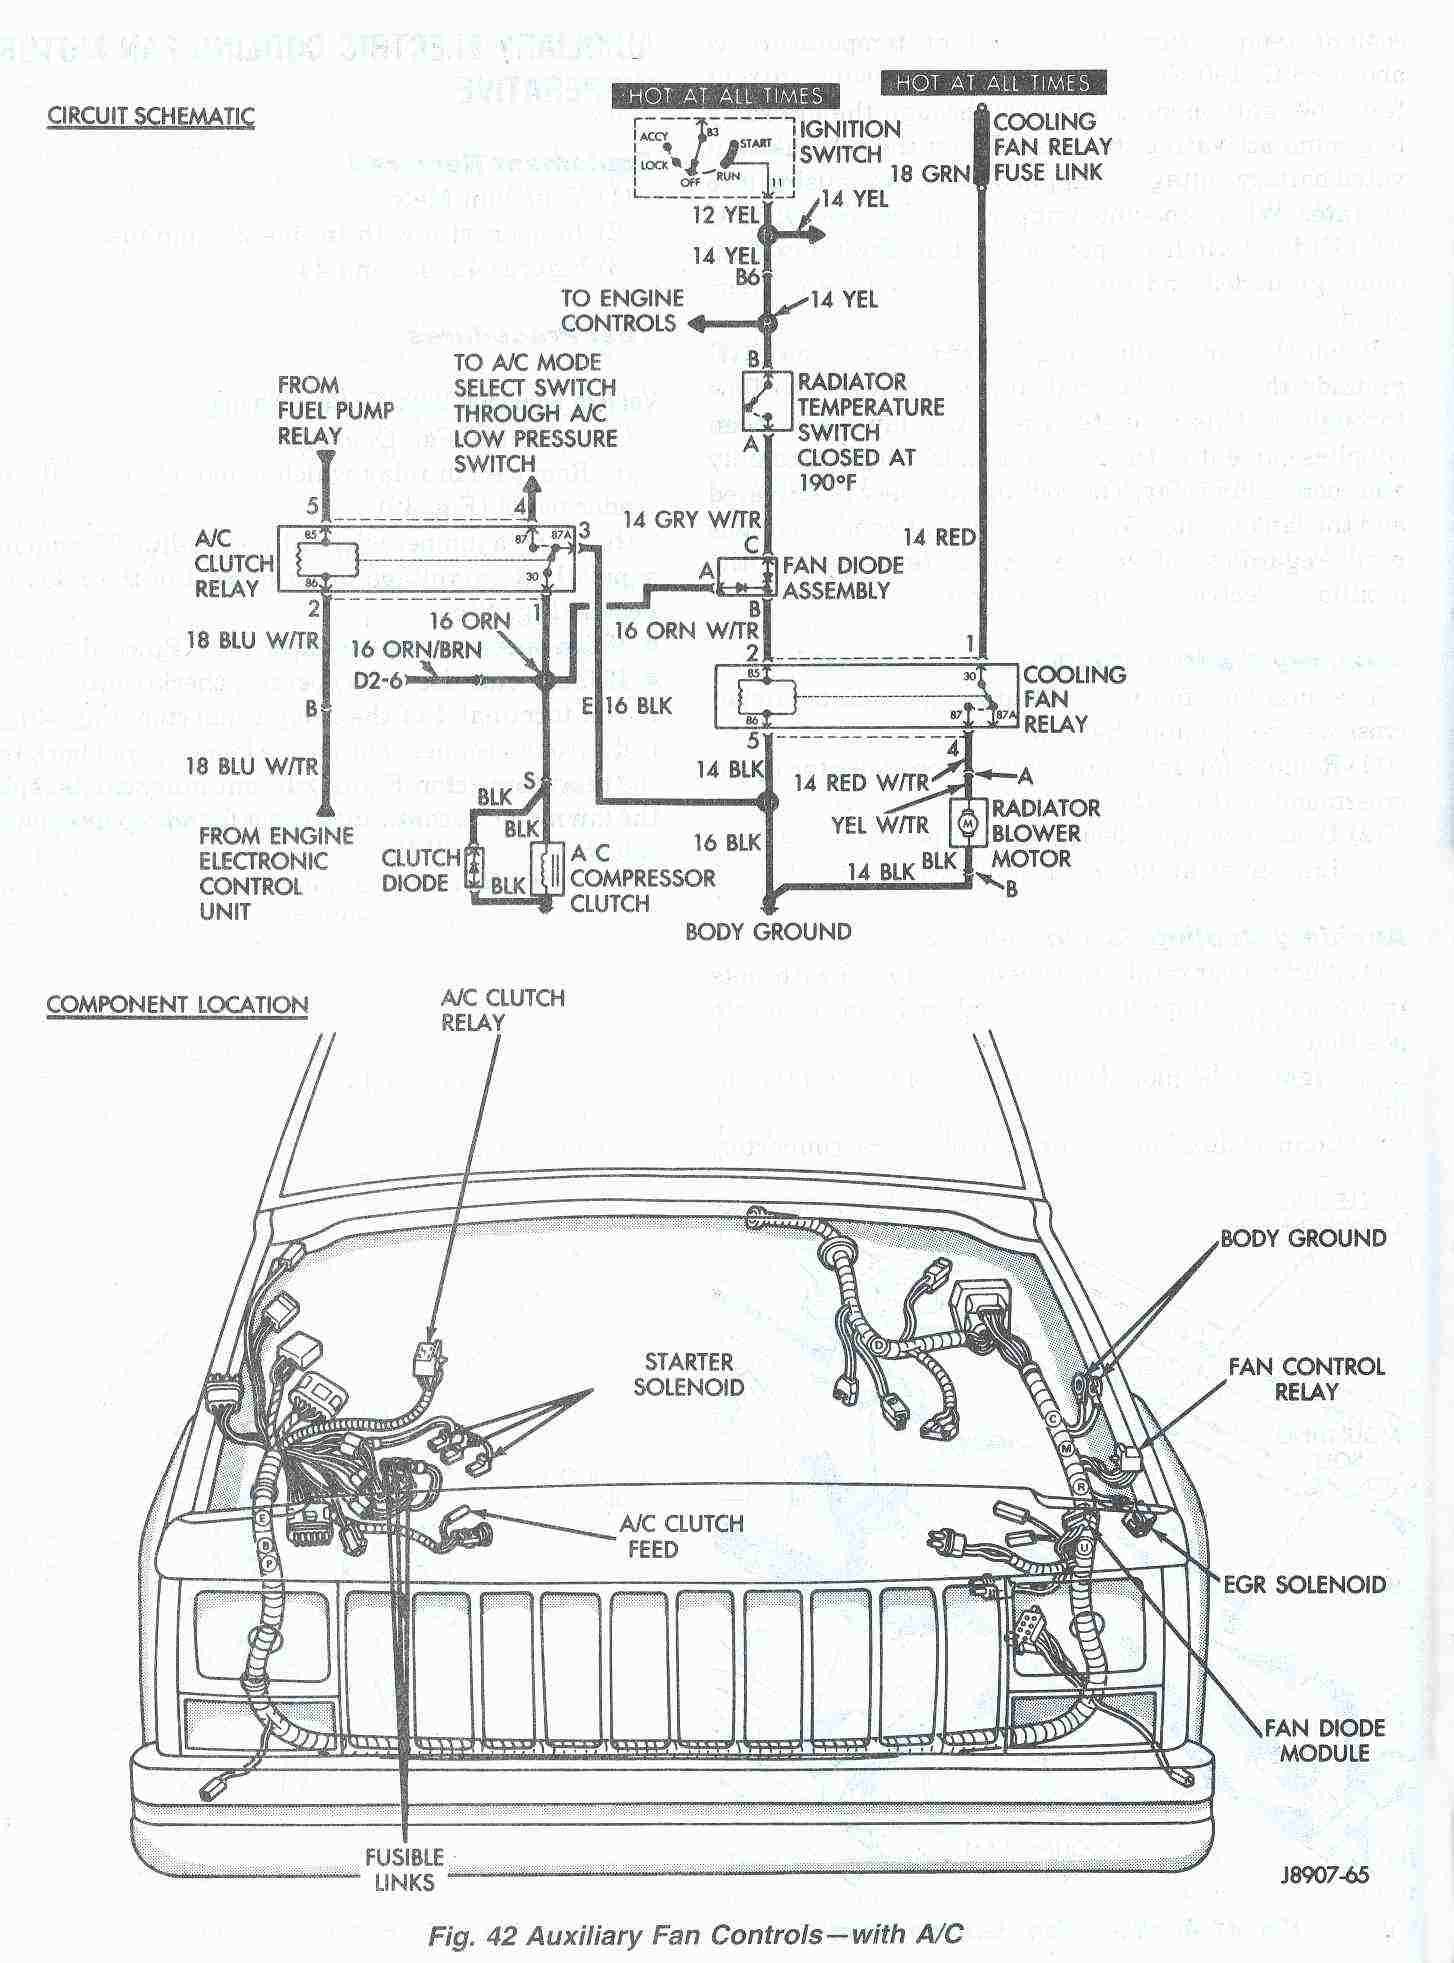 e8c83109bad6c41d377df8c1cb7a8dc4 at the asd relay if vole is not b16 check fuse 20 30 a good there 1988 jeep comanche wiring diagram at mifinder.co